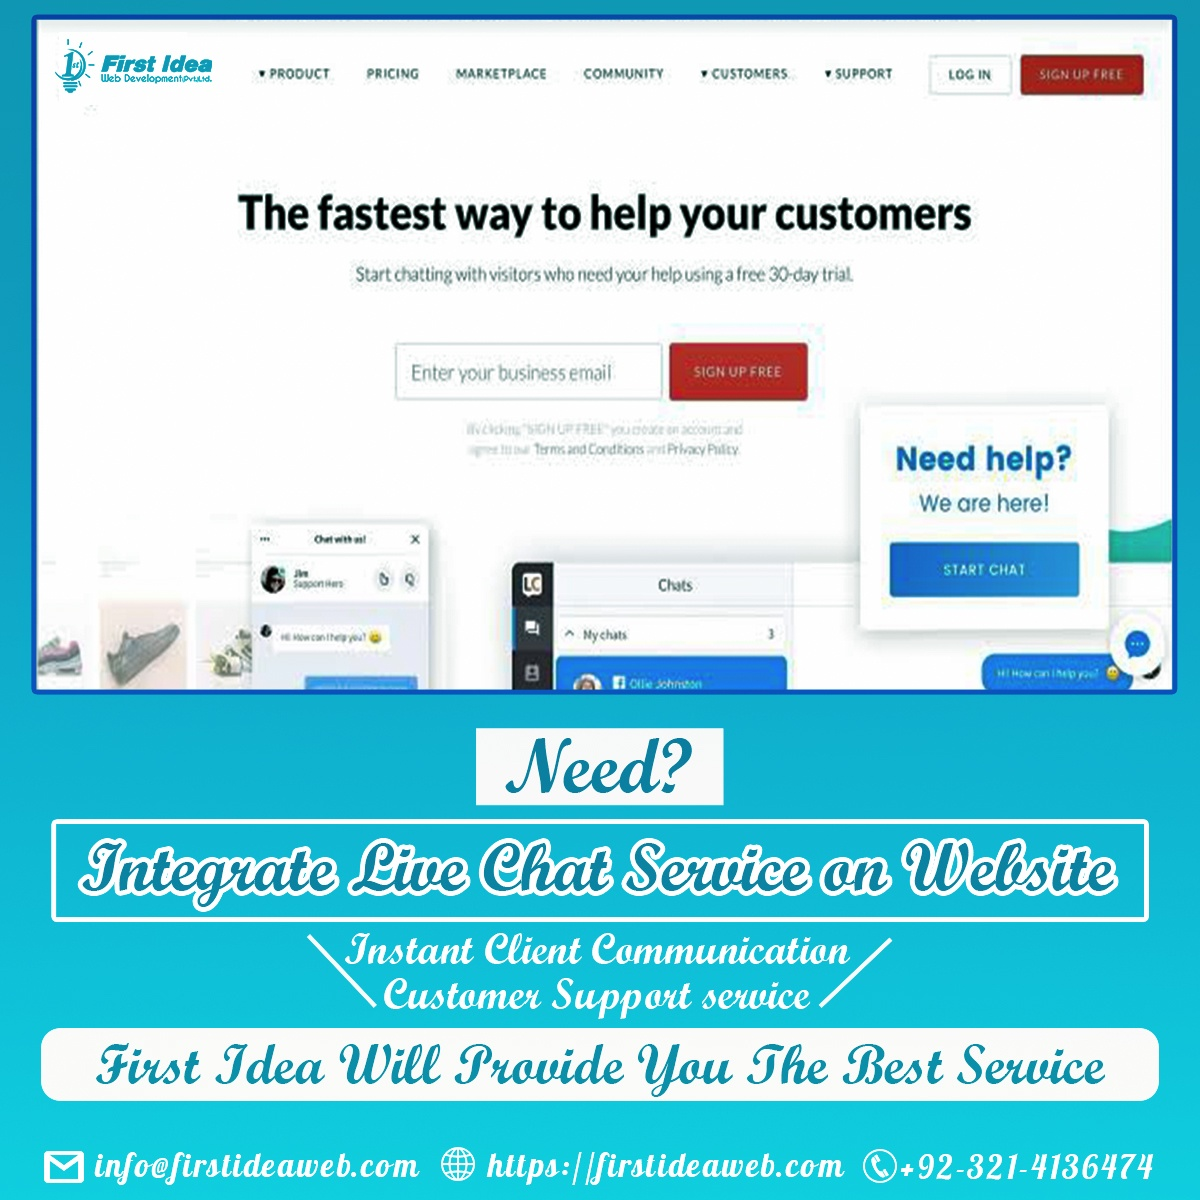 advantages of live chat support, customer support chat integration, benefits of live chat for eCommerce, Live chat role in customer service